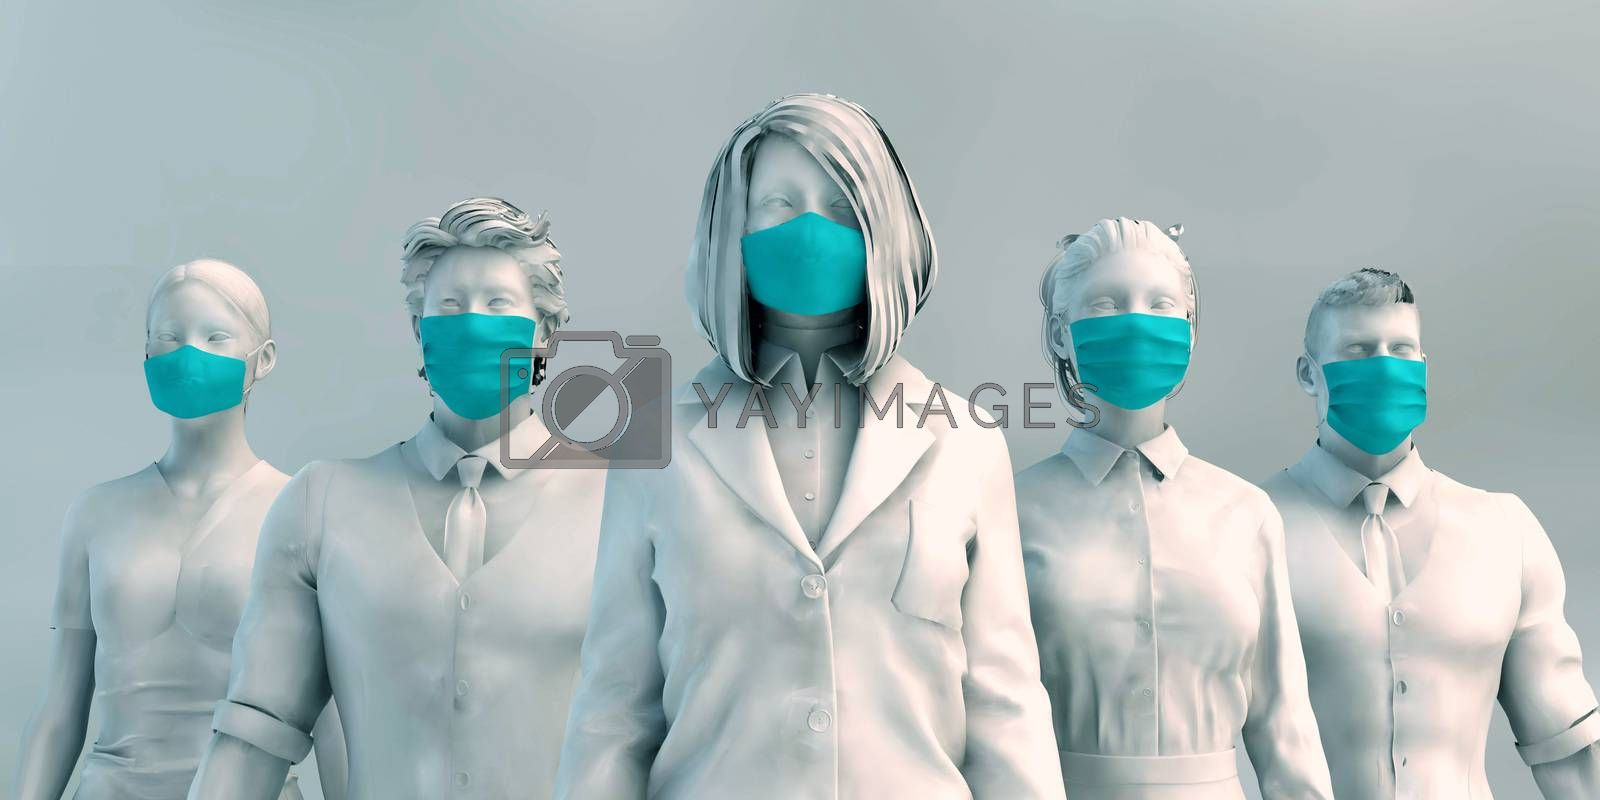 Health Workers Medical Staff Prepared to Fight Covid-19